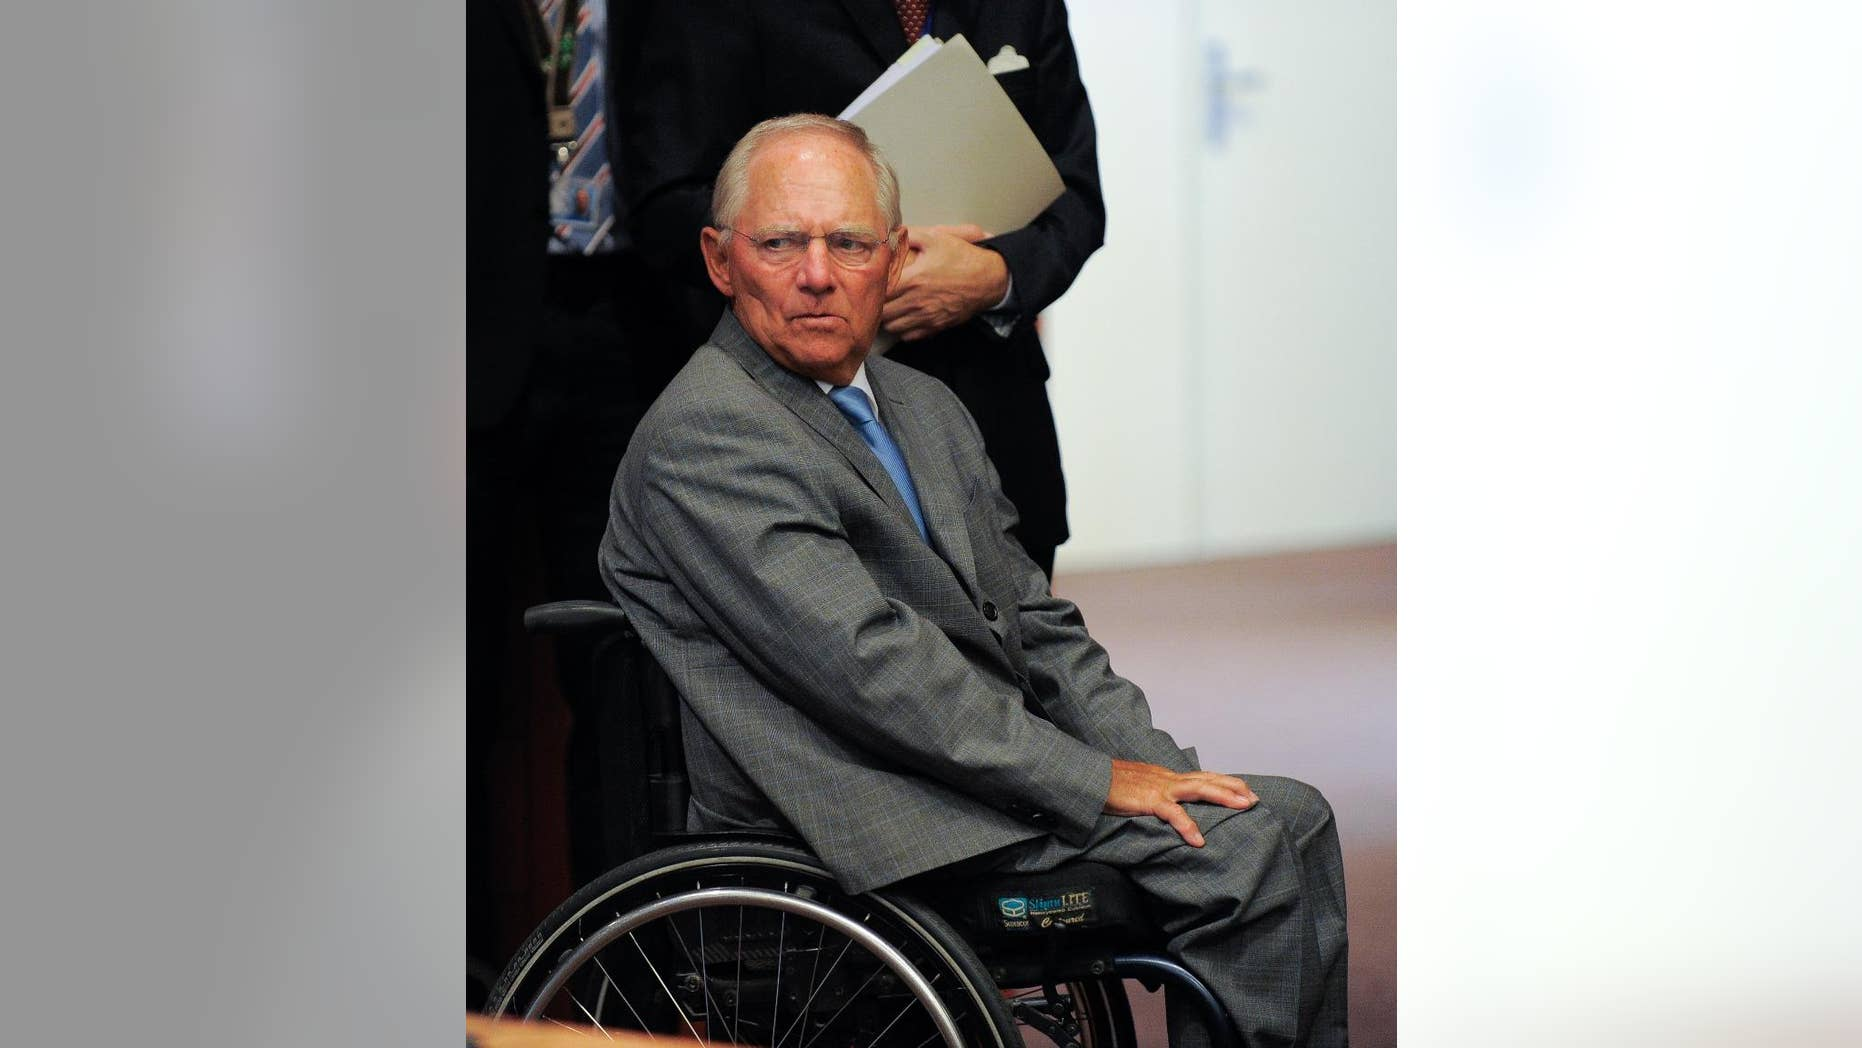 German Finance Minister Wolfgang Schaeuble during a meeting of eurozone finance ministers at the EU Council building in Brussels on Friday, Aug. 14, 2015. (AP Photo/Laurent Dubrule)